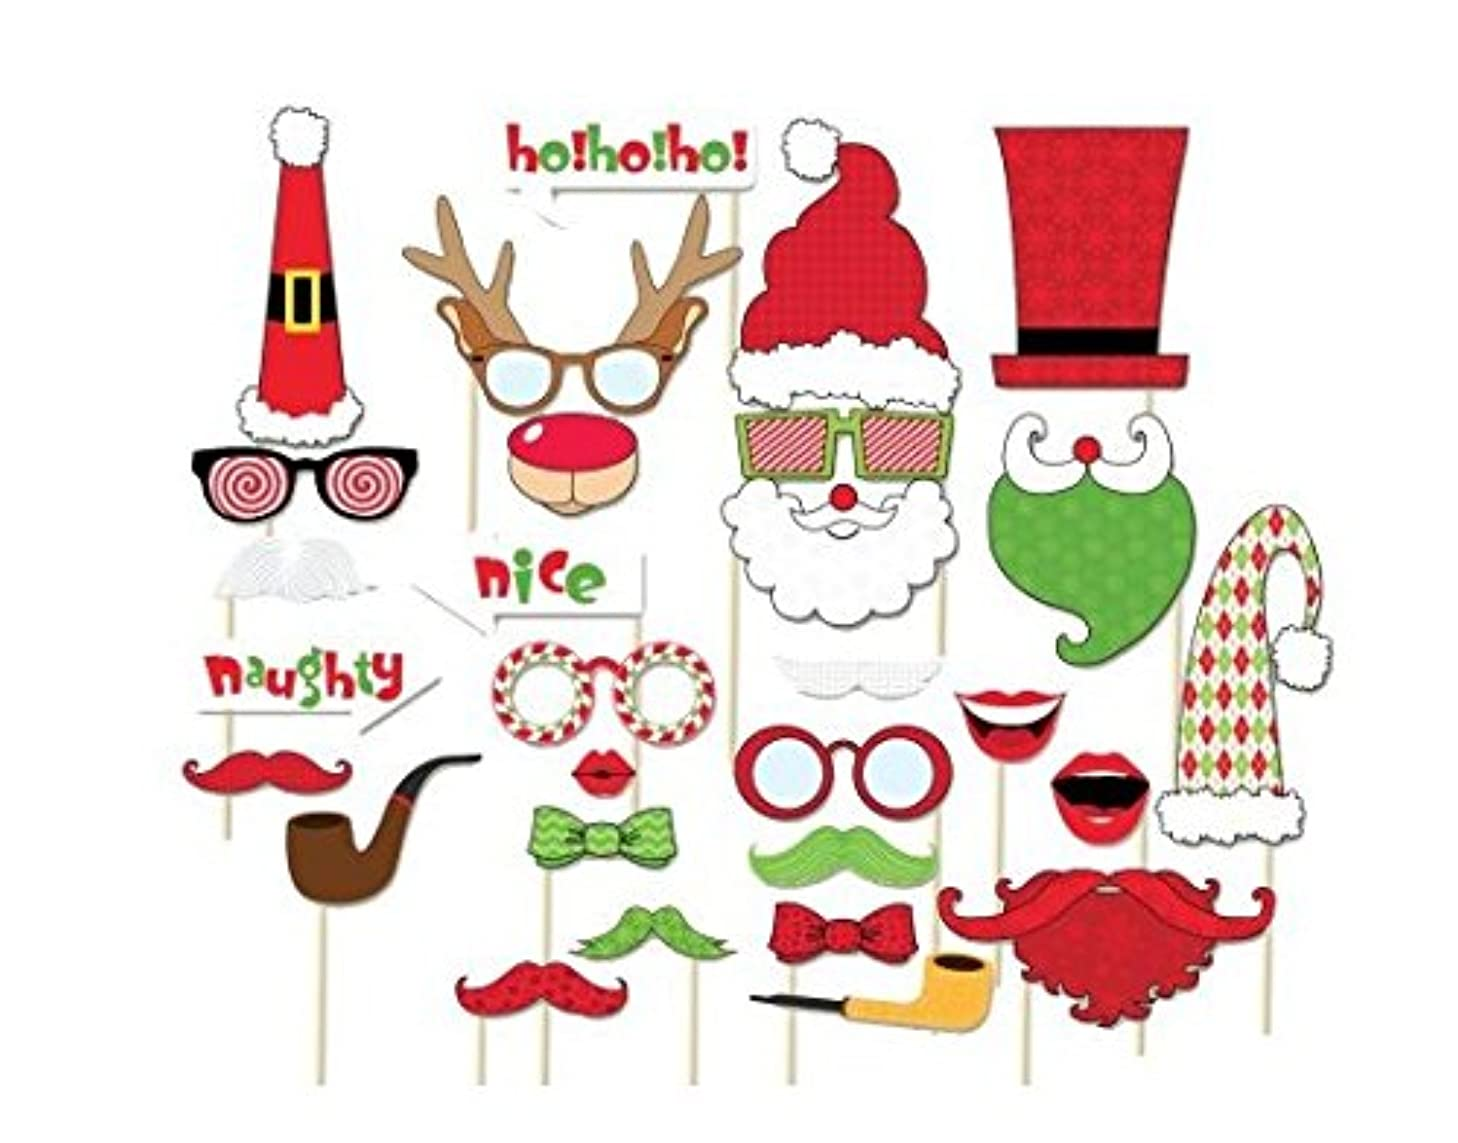 [USA-SALES] Christmas Photo Booth Props, Christmas Party Decorations, Attached to the Stick, No DIY Required, by USA SALES Seller